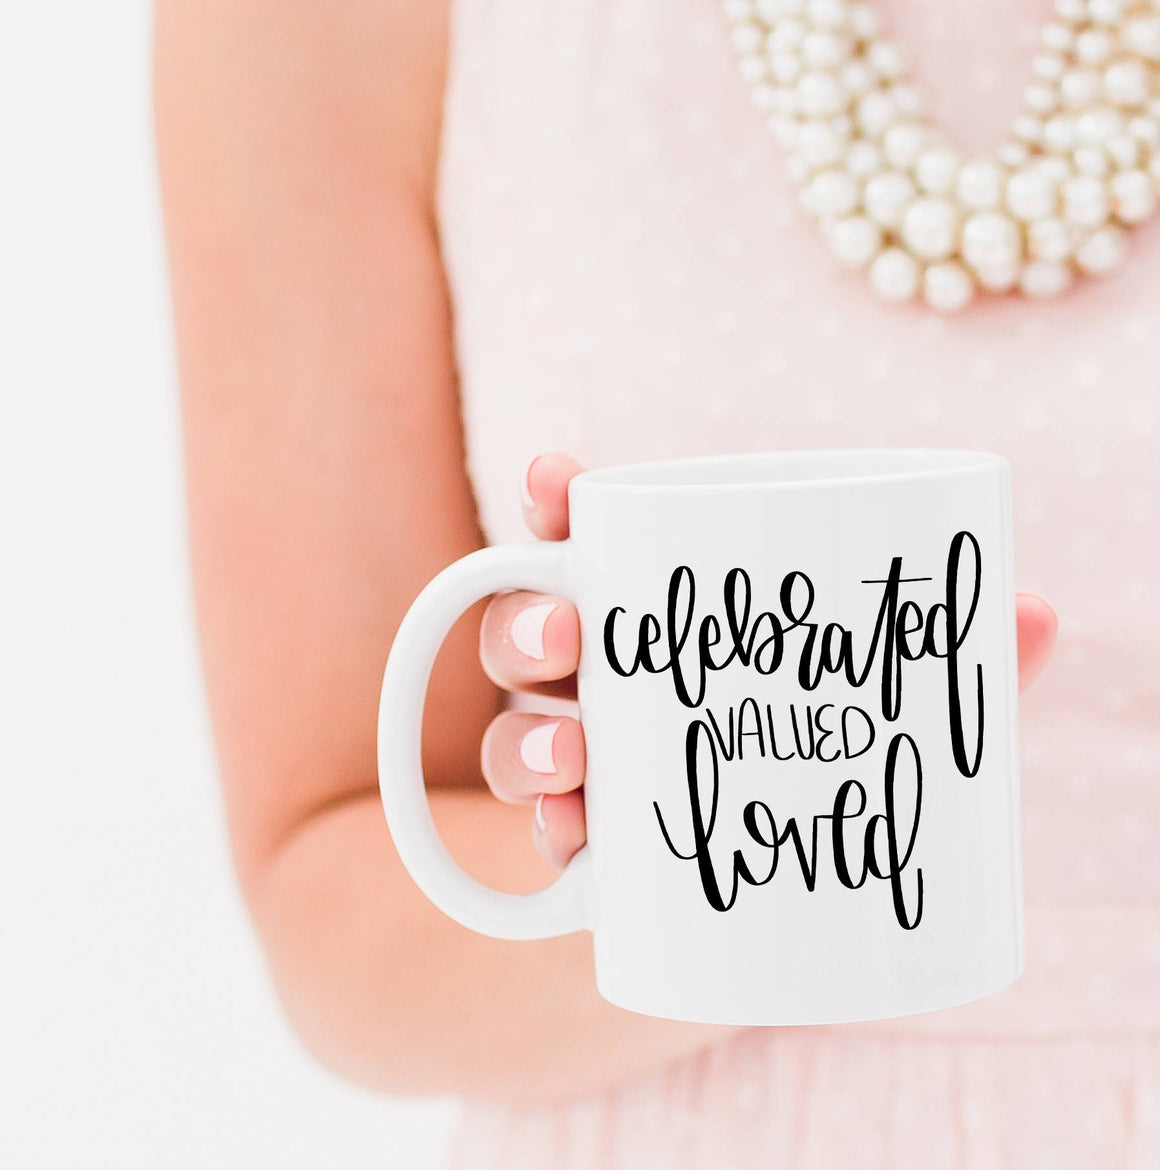 Full Heart Co's Hand-Lettered Celebrated, Valued, Loved mug. 10% of each sale is donated to the Tim Tebow Foundation. Be encouraged + give back at the same time. This cute coffee mug is a great reminder that you are truly celebrated, valued, and loved. Buy it for yourself or a friend.